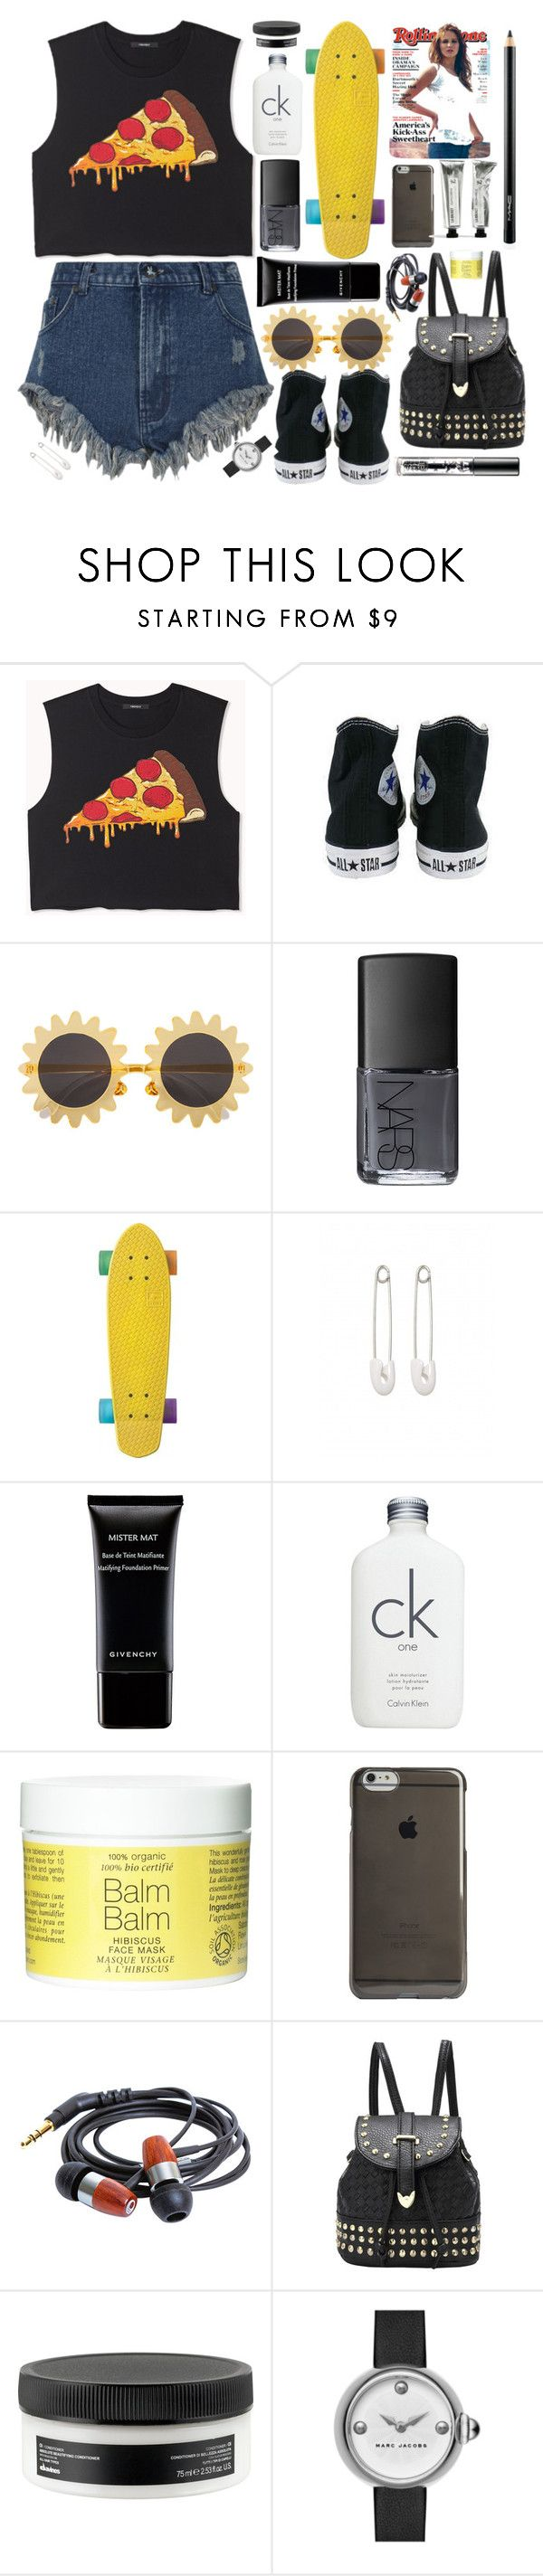 """""""Lunchtime"""" by swanniboo on Polyvore featuring Forever 21, Converse, H&M, NARS Cosmetics, Kristin Cavallari, Givenchy, Calvin Klein, Agent 18, Davines and Marc by Marc Jacobs"""